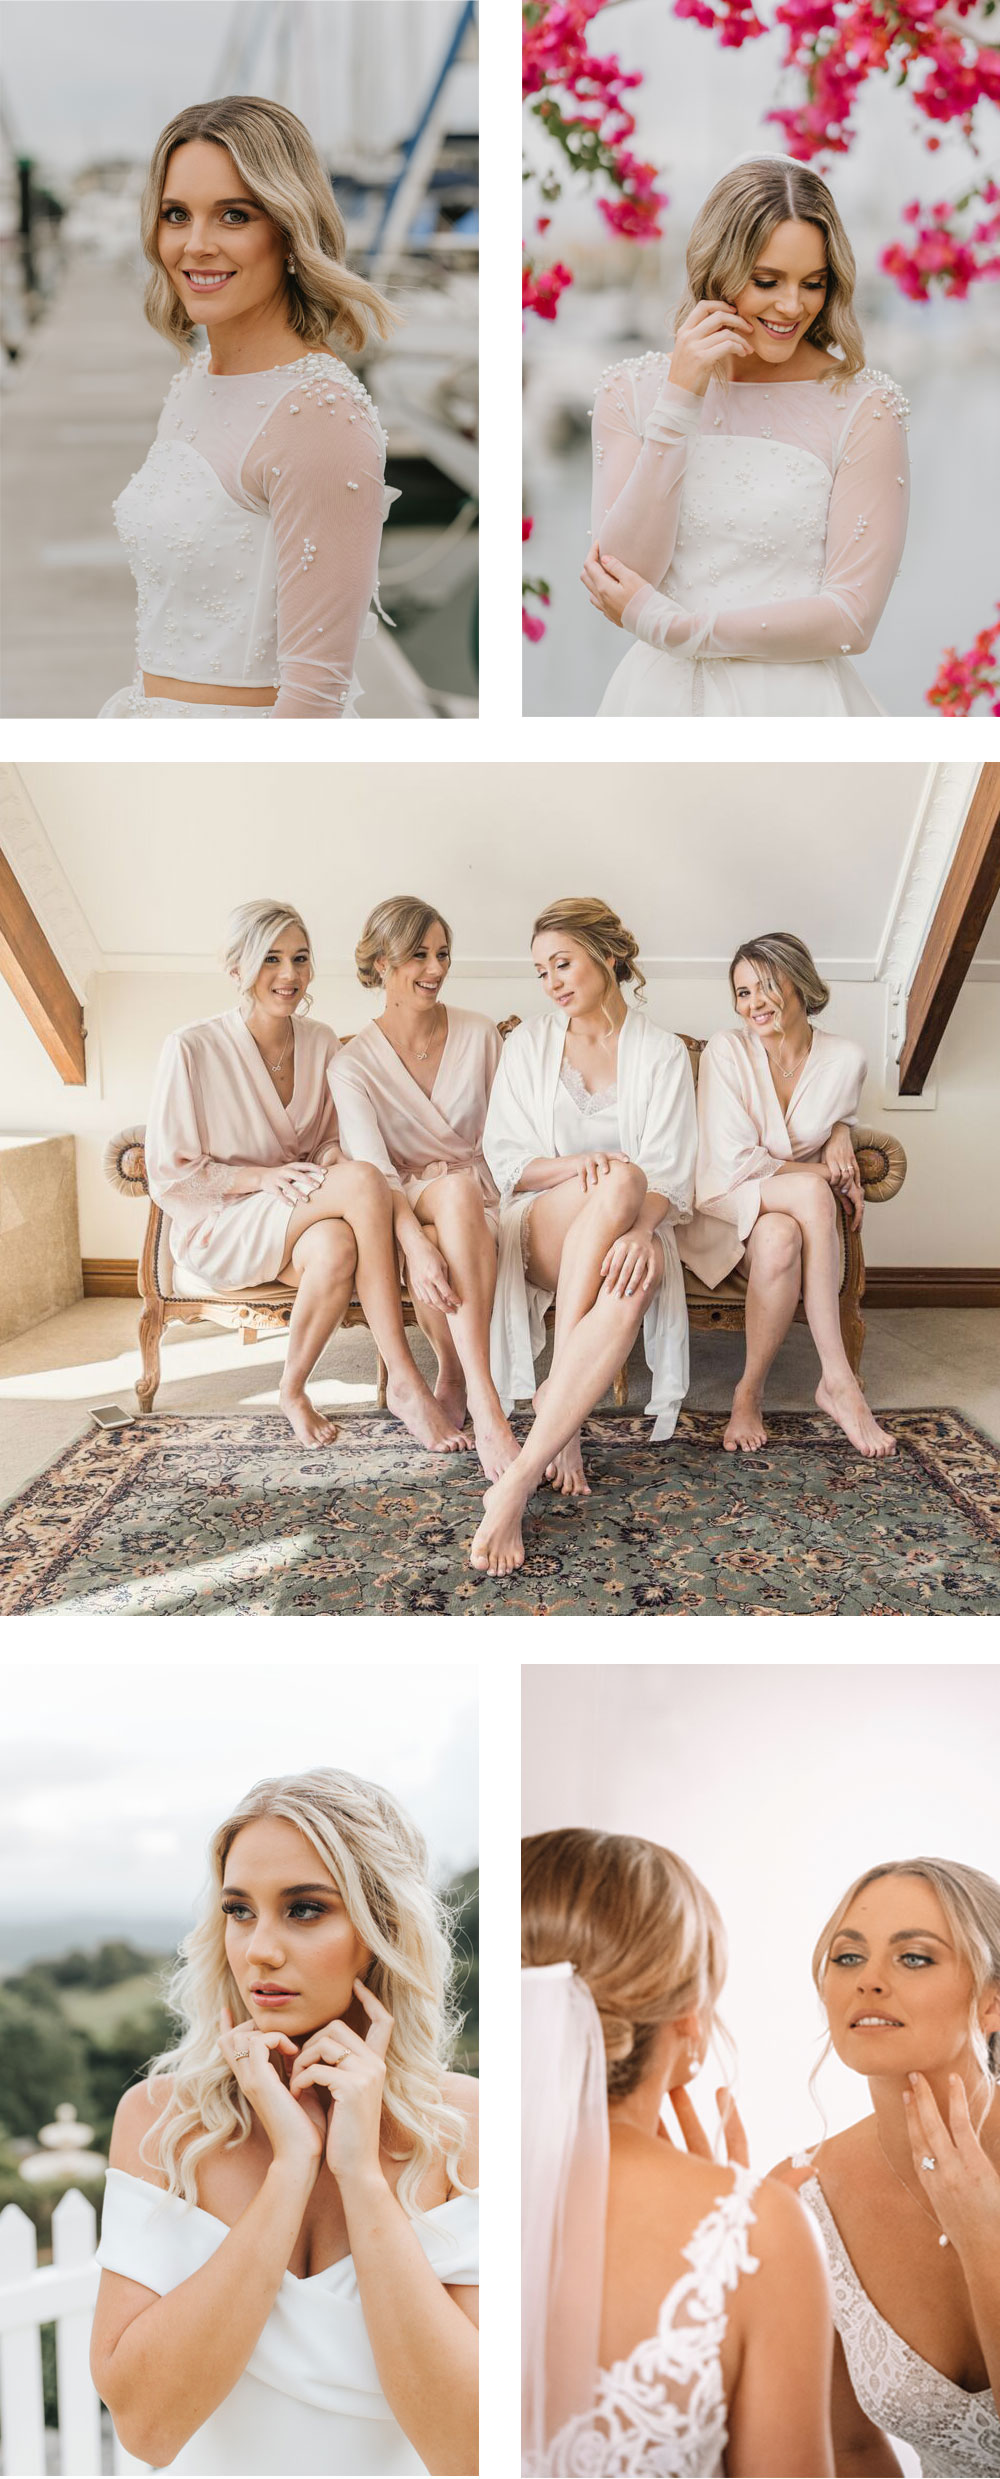 Louise-Henzell-Wedding-Collection-natural-beauty_bride-and-bridesmaids-web